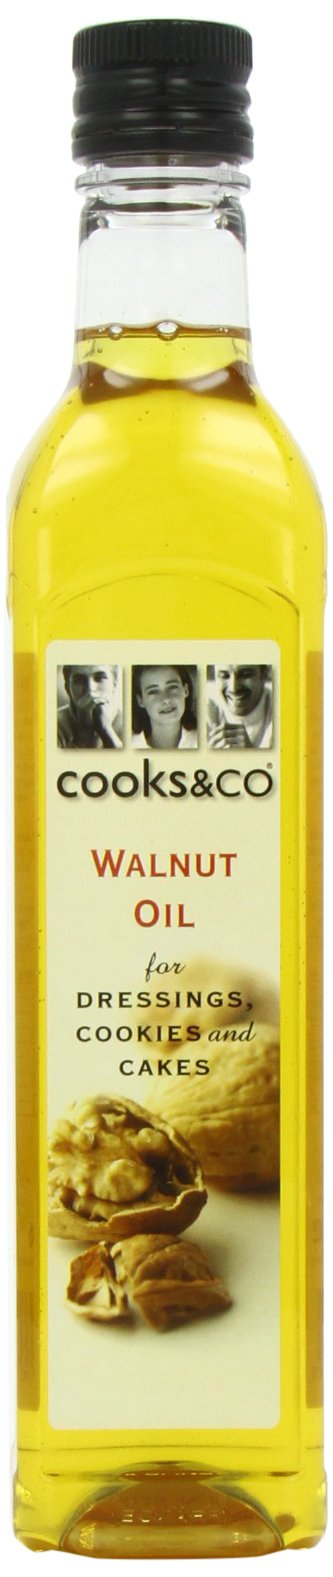 Cooks & Co - Specialty Oils & Vinegars - Walnut Oil - 500ml (Case of 6) by Cook's